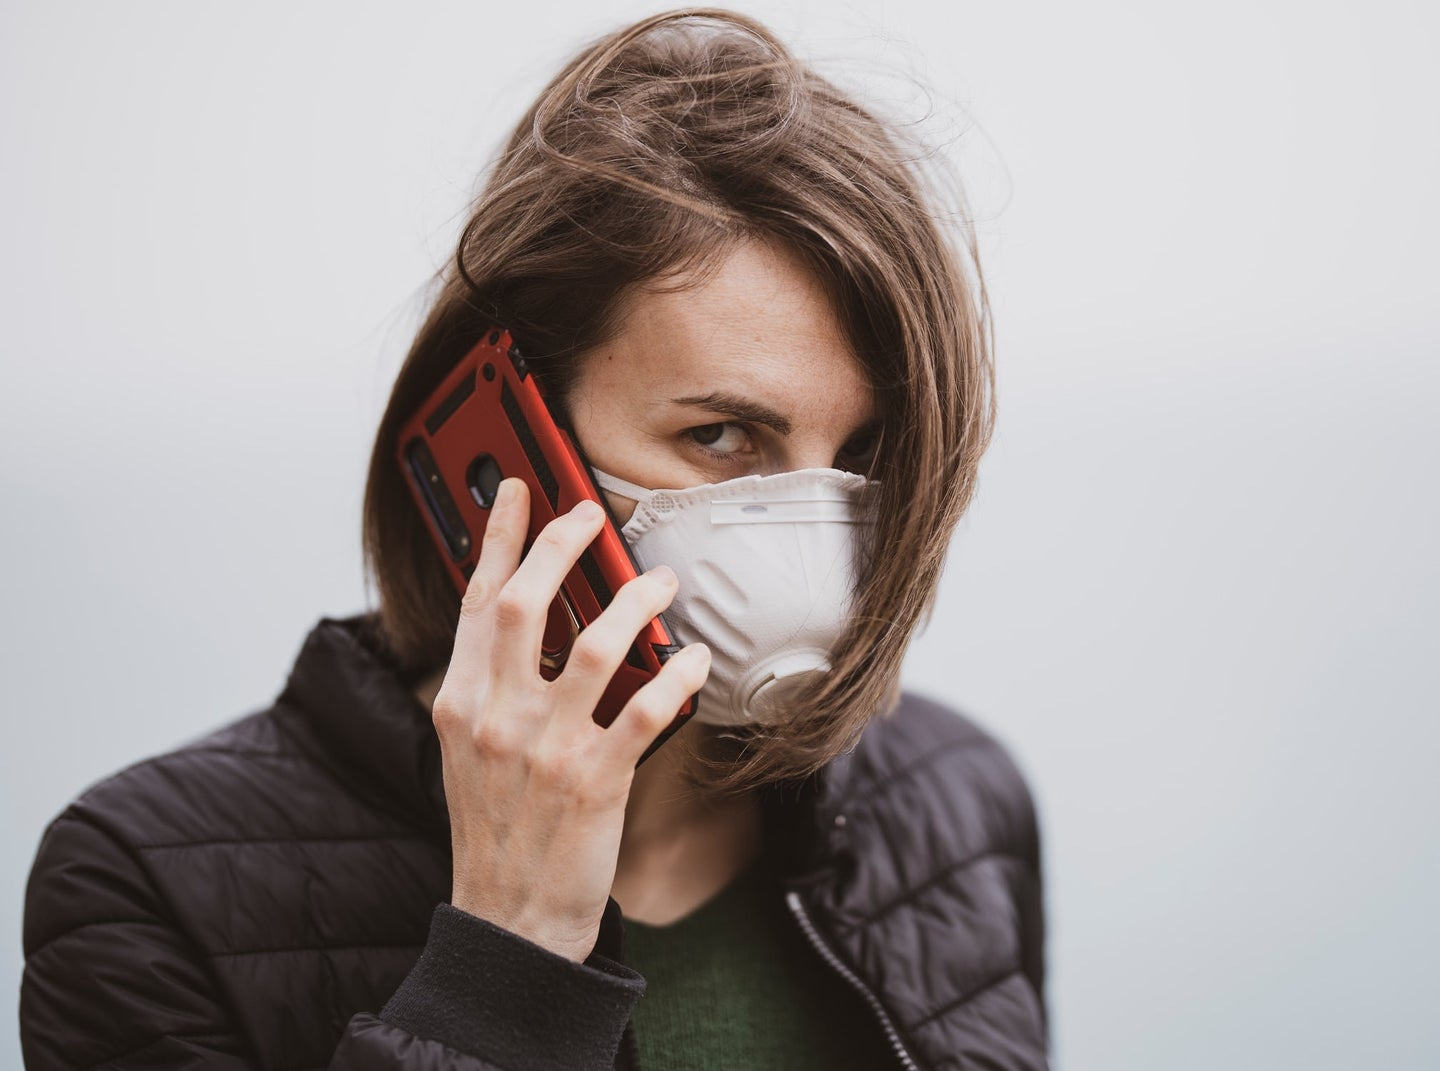 a woman is talking on the phone while wearing a protective face mask. The mask is white and has a plastic valve on the front of it.